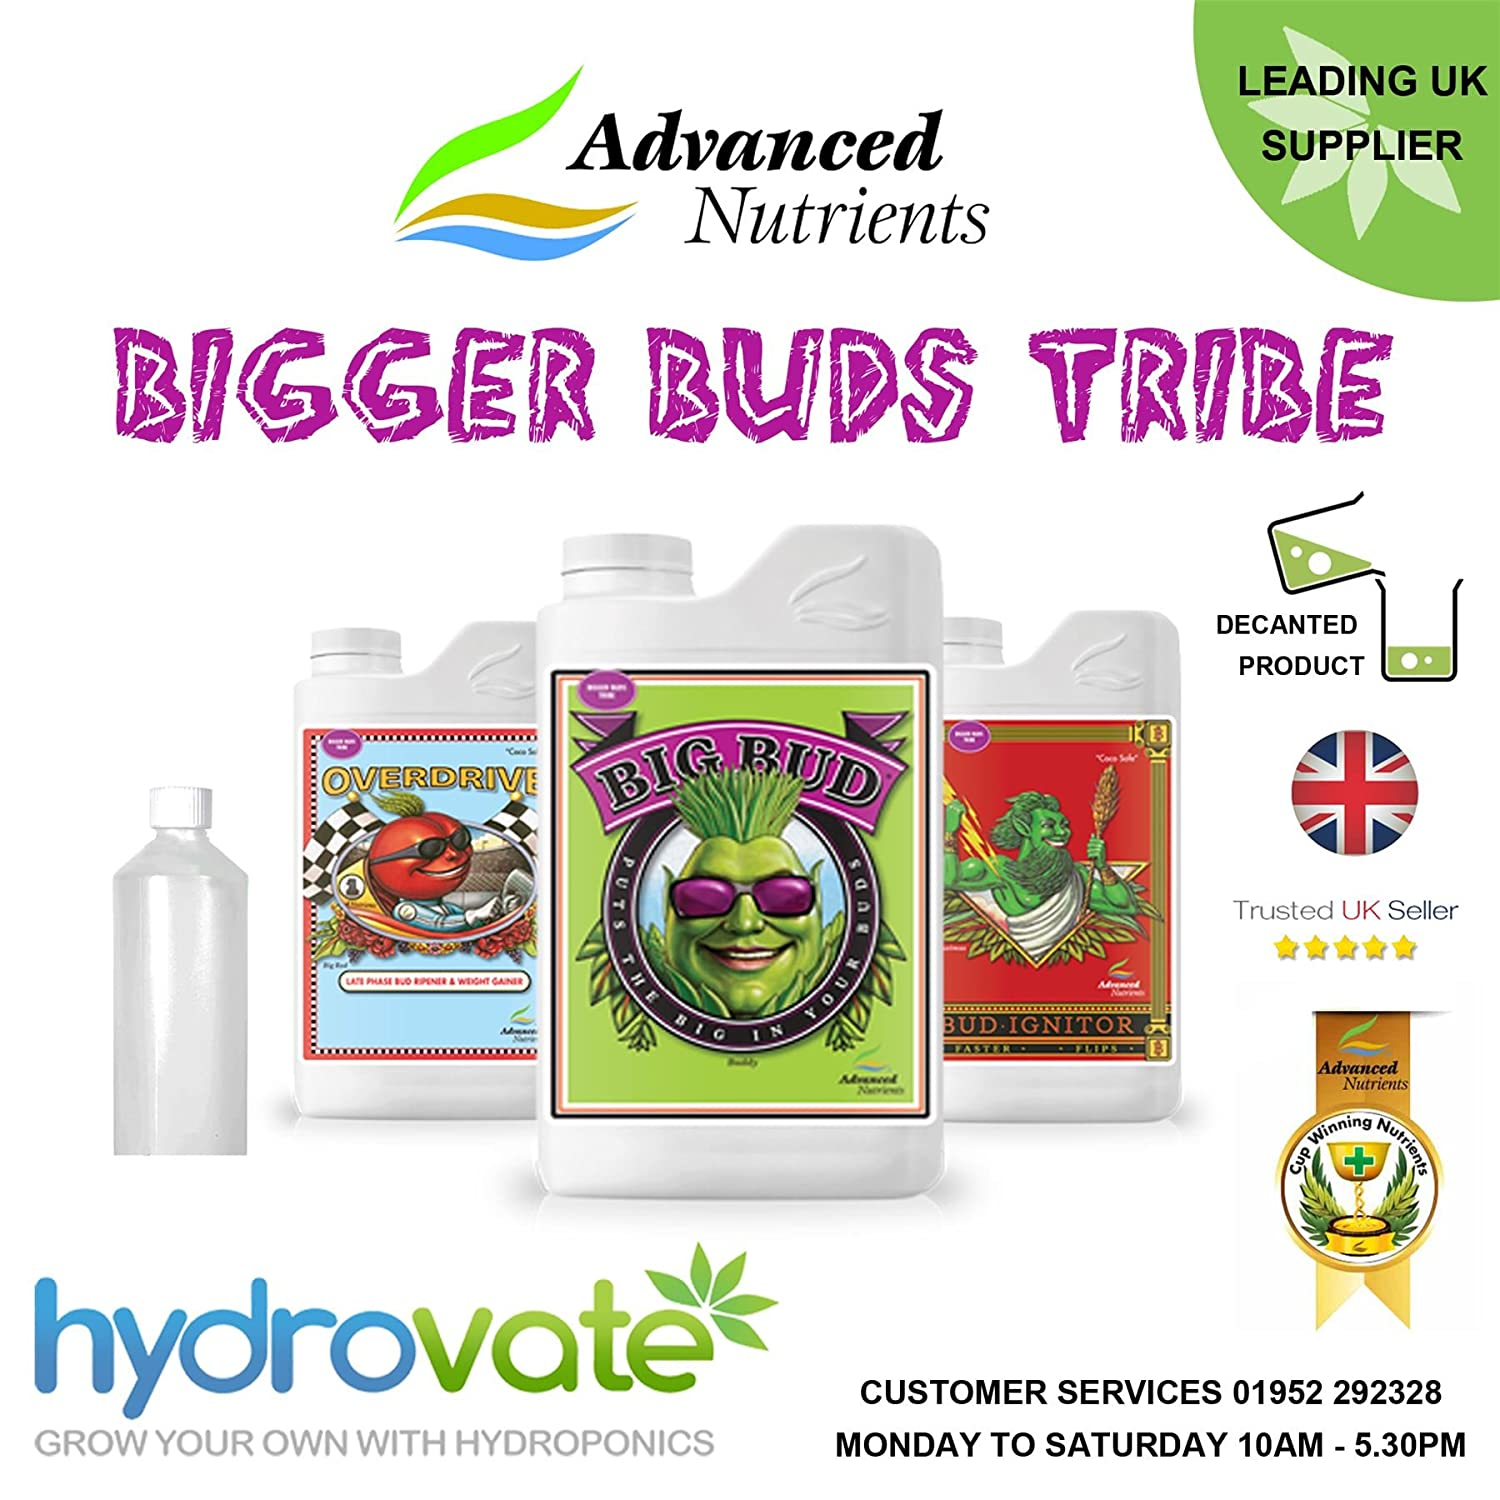 Bigger Buds Tribe Advanced Nährstoffe 500 ml Big Bud Bud Ignitor Overdrive Bloom Grow Grand Master